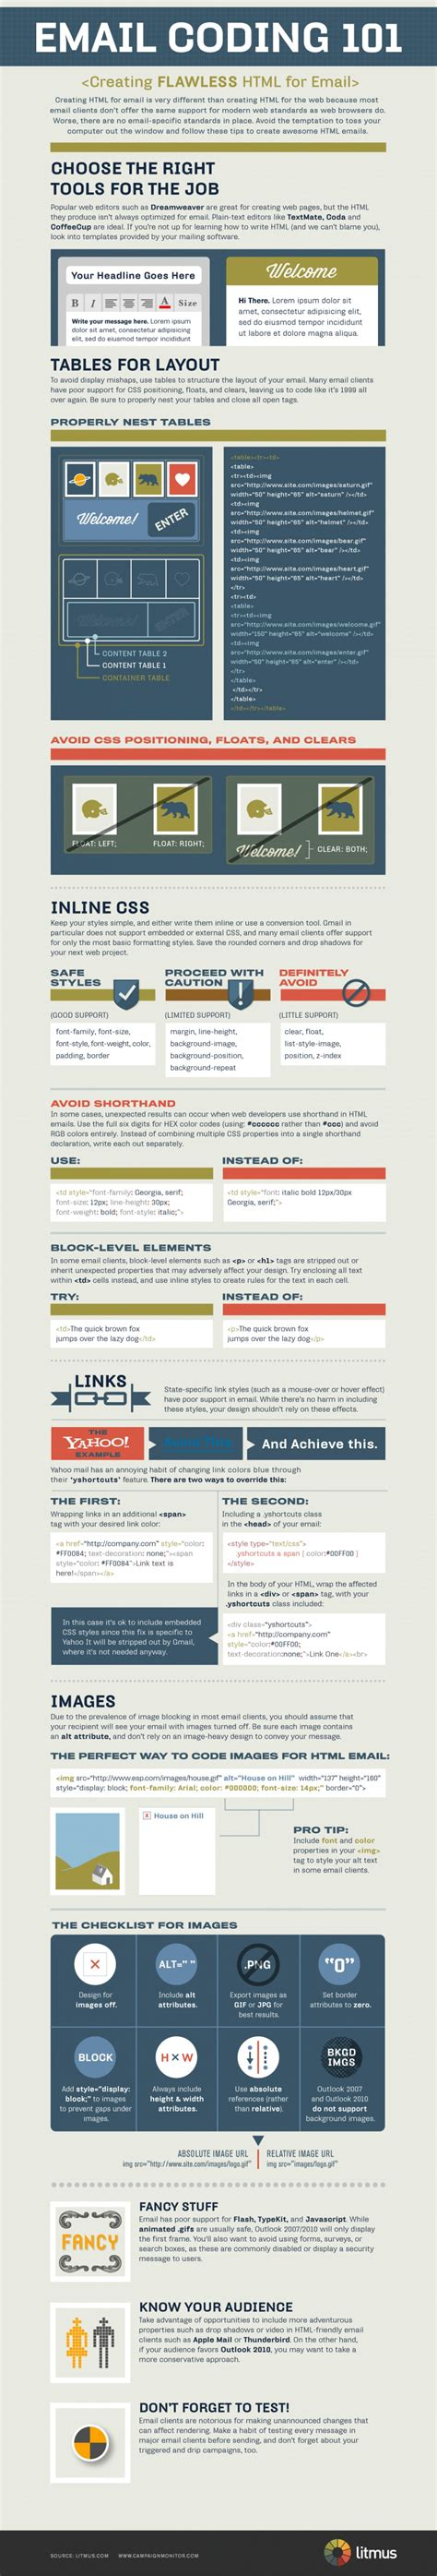 html email code   guide  email marketing infographic